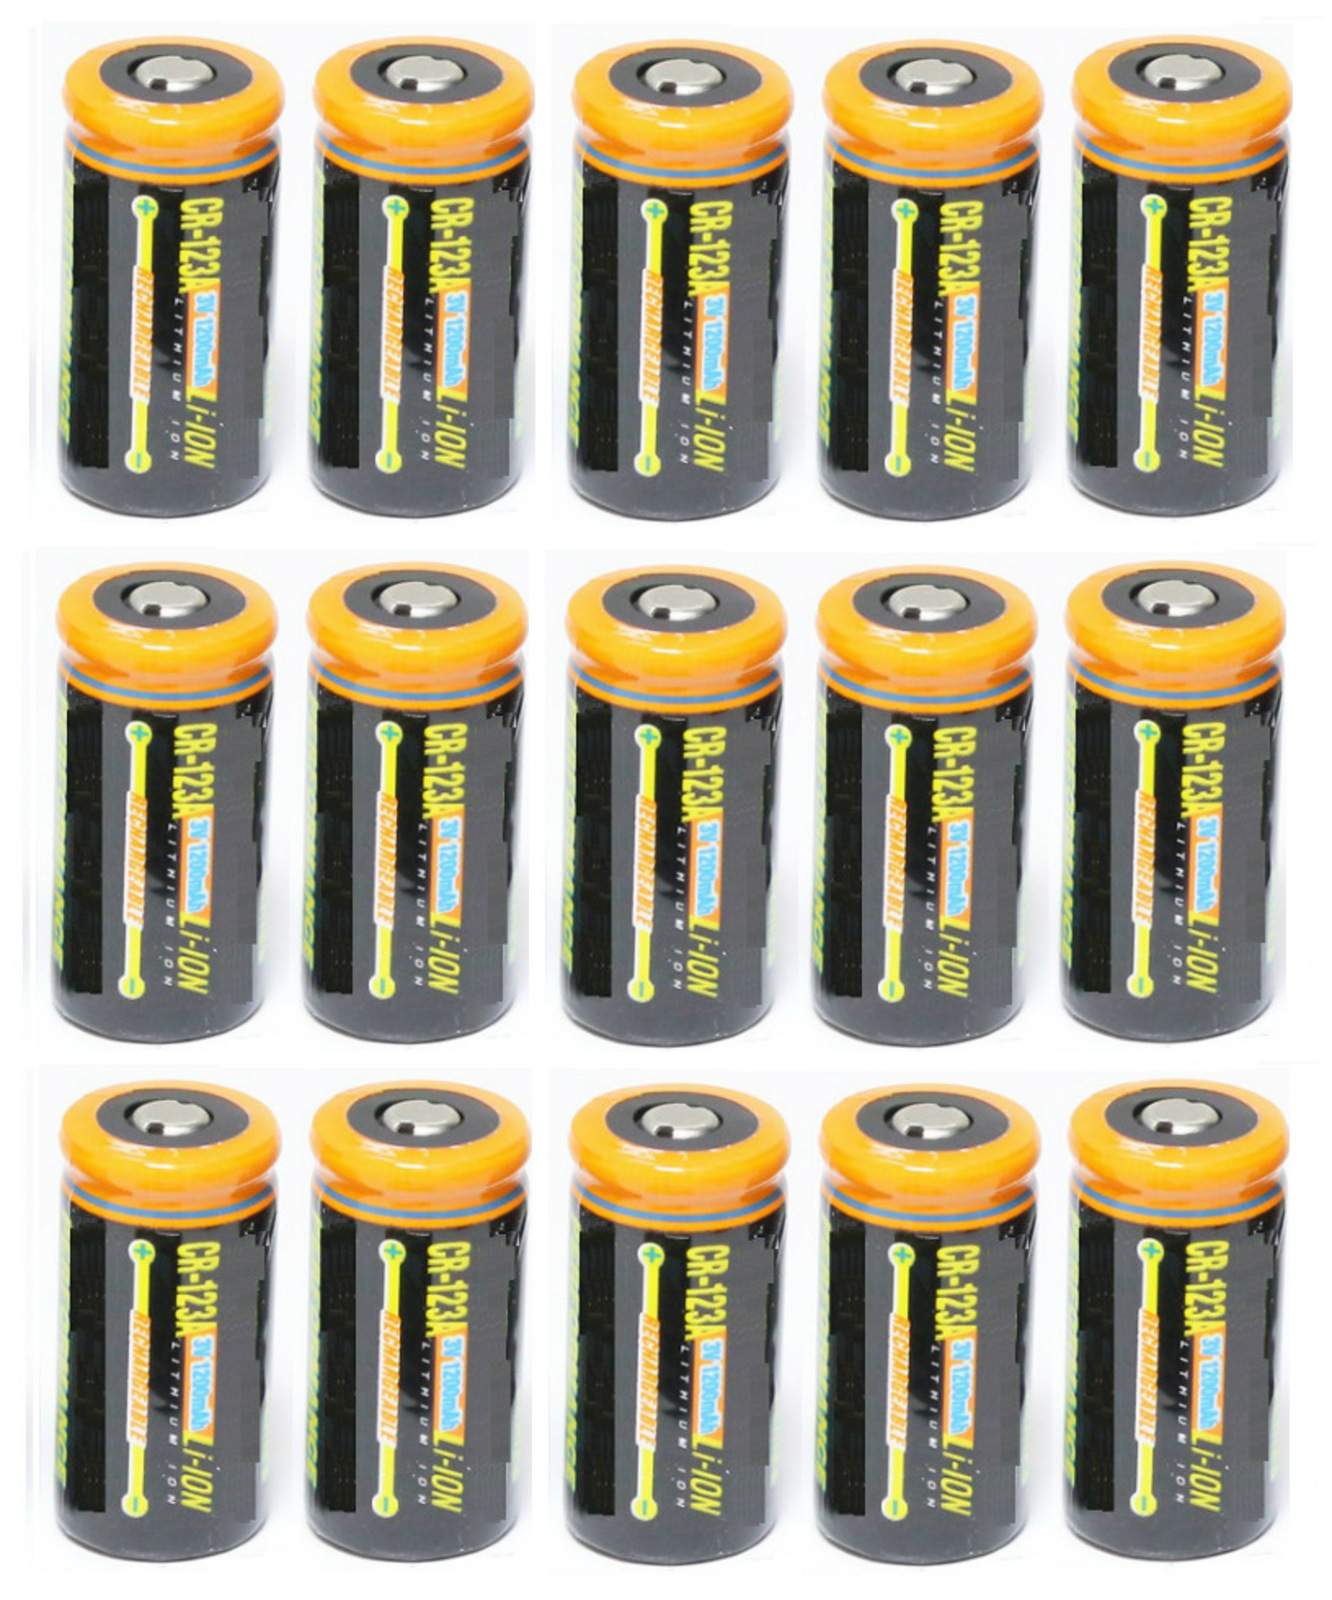 Ultimate Arms Gear 15 Pack CR123A 1200 mAh Lithium Rechargeable Batteries Battery For EOTECH Optics by